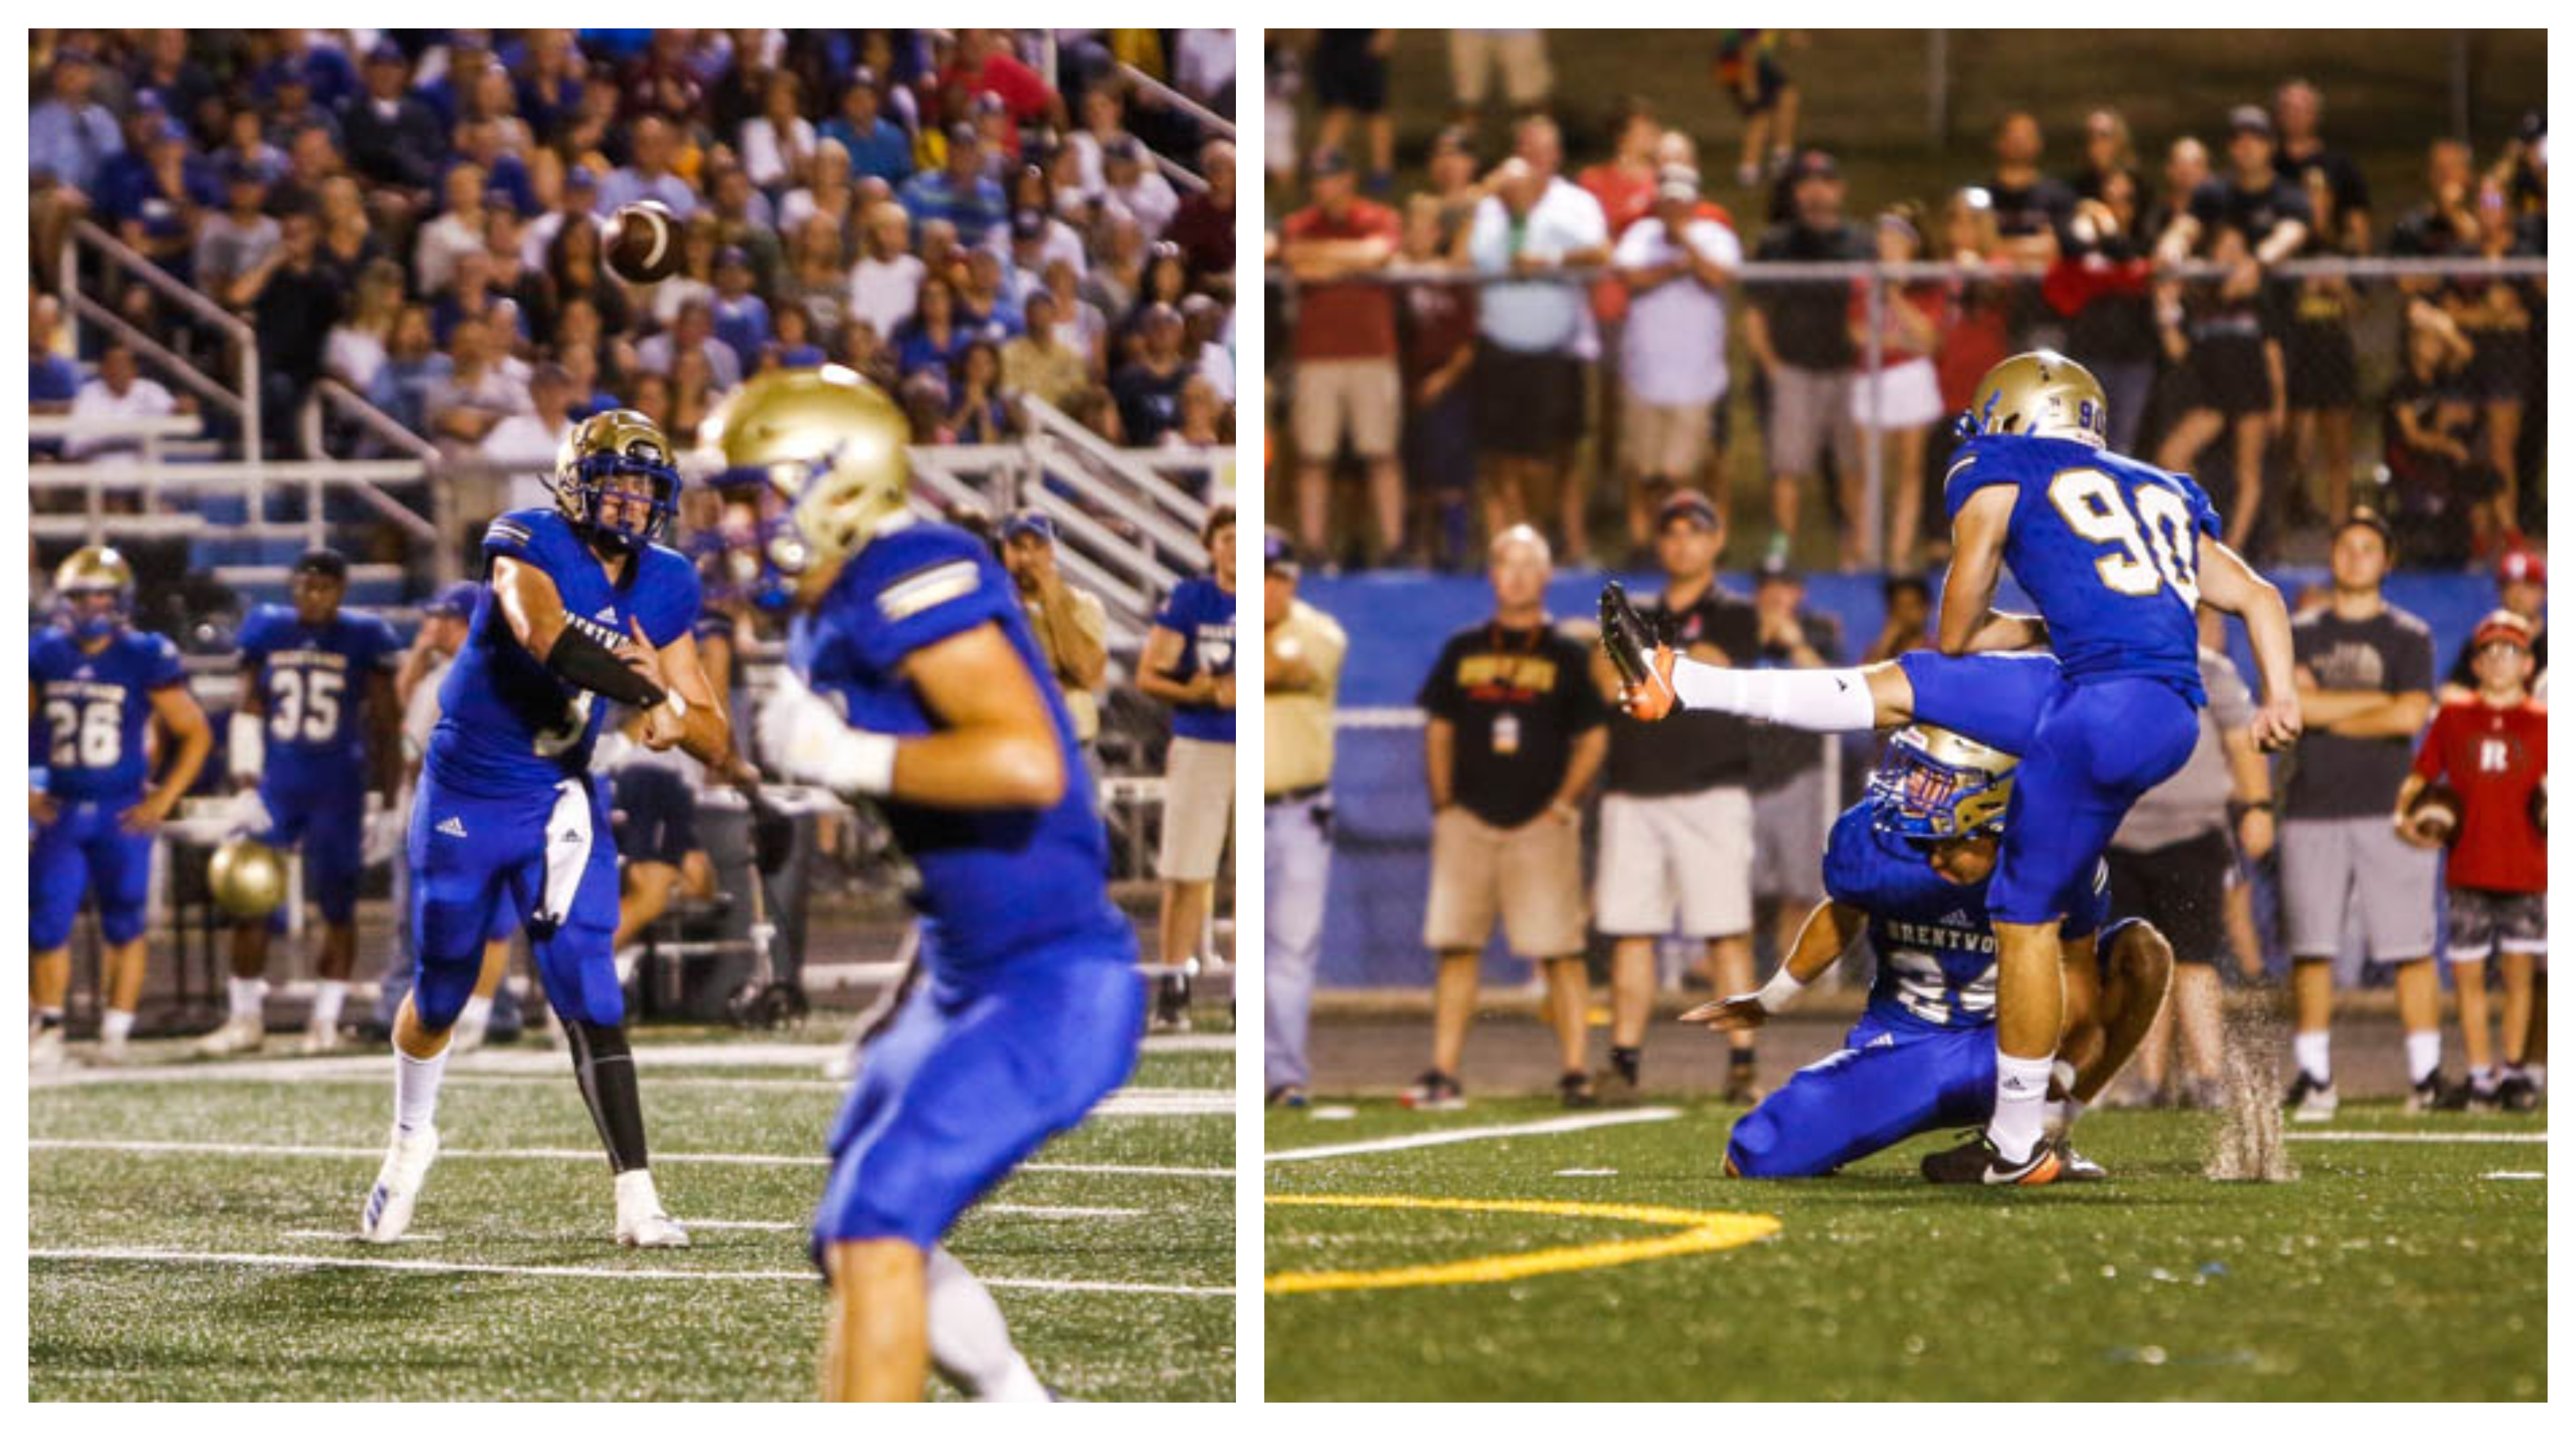 CITY CAFE PLAYERS OF THE WEEK: Brentwood QB Cade Granzow, K Thomas Day